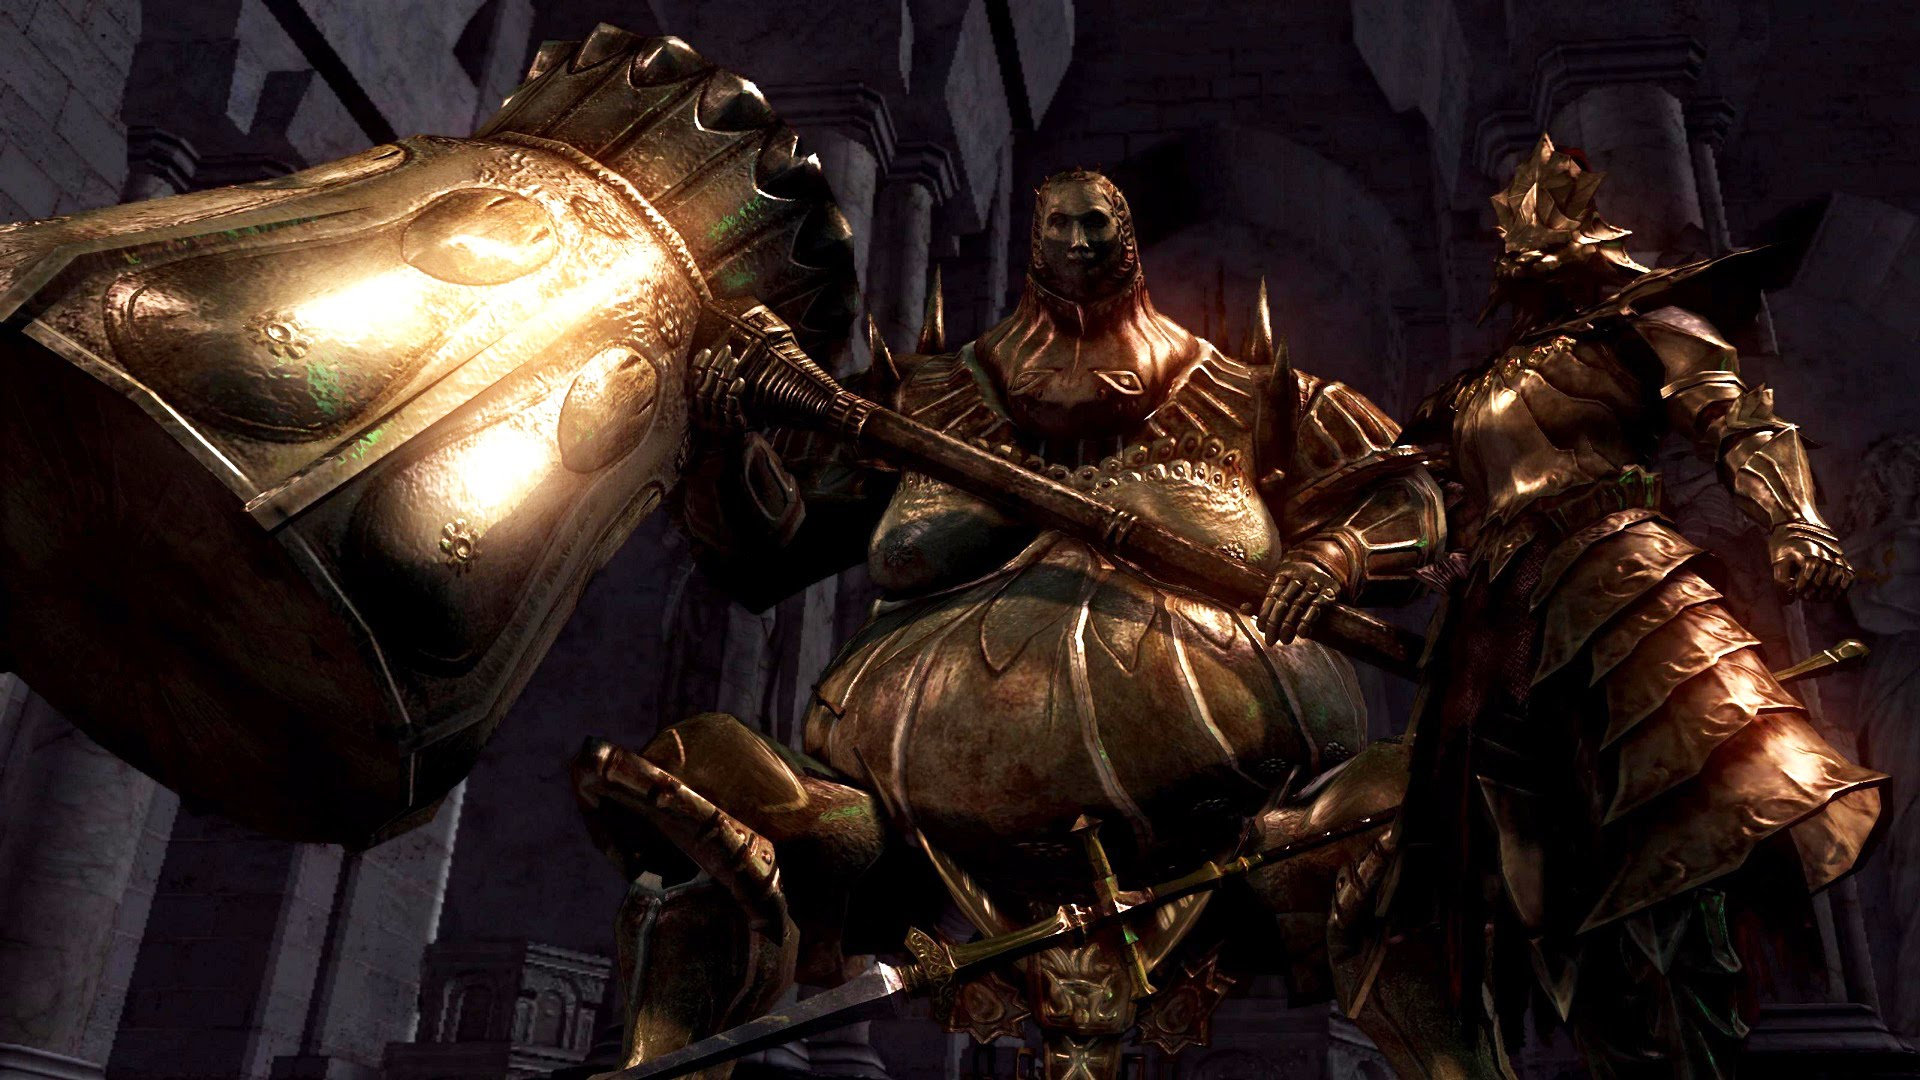 This Dark Souls mod lets you play the whole game as your favorite boss | PC Gamer